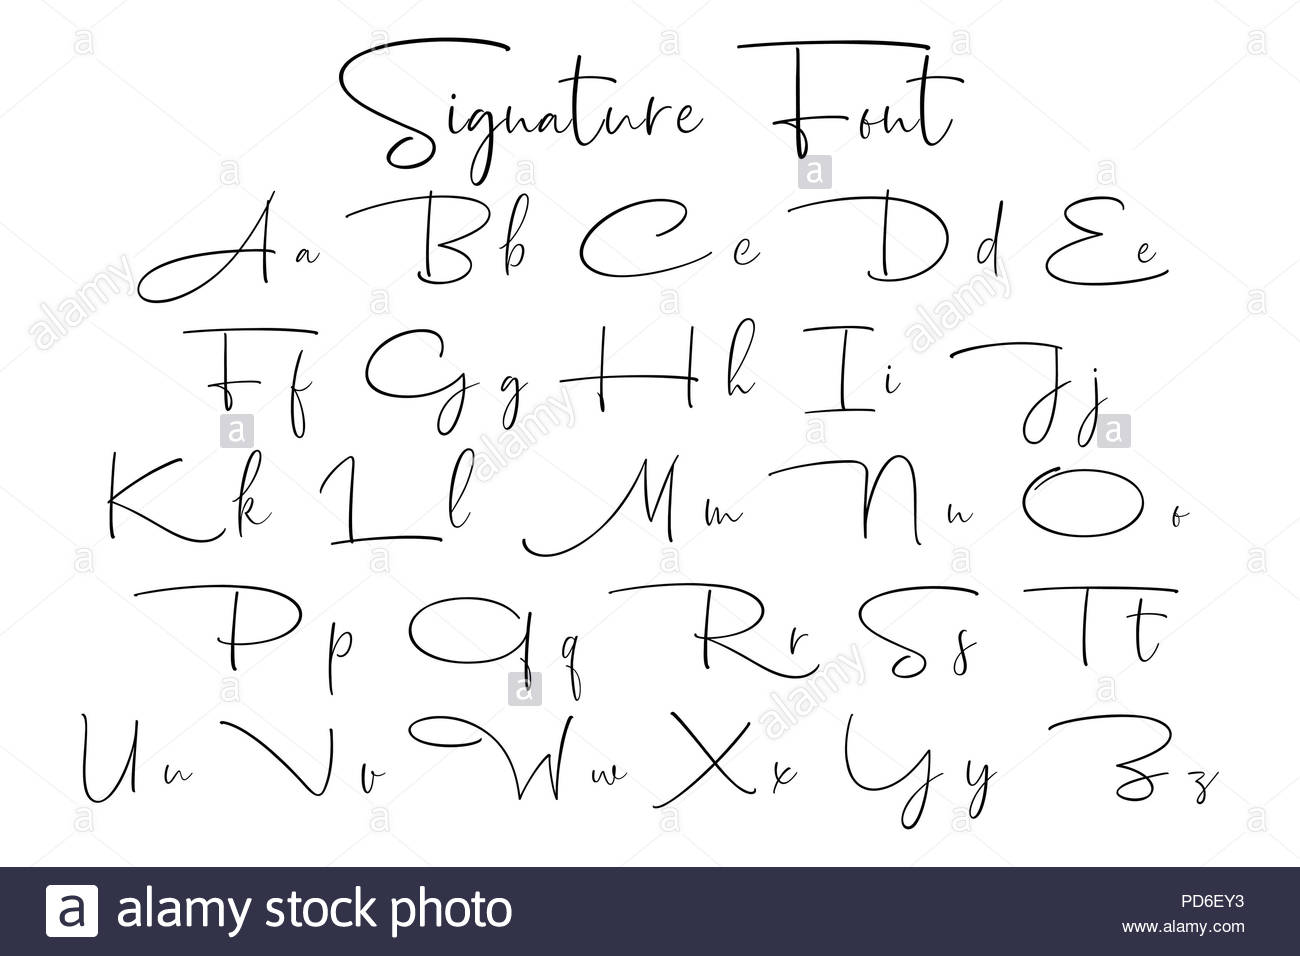 signature font alphabet stock photo  214658391